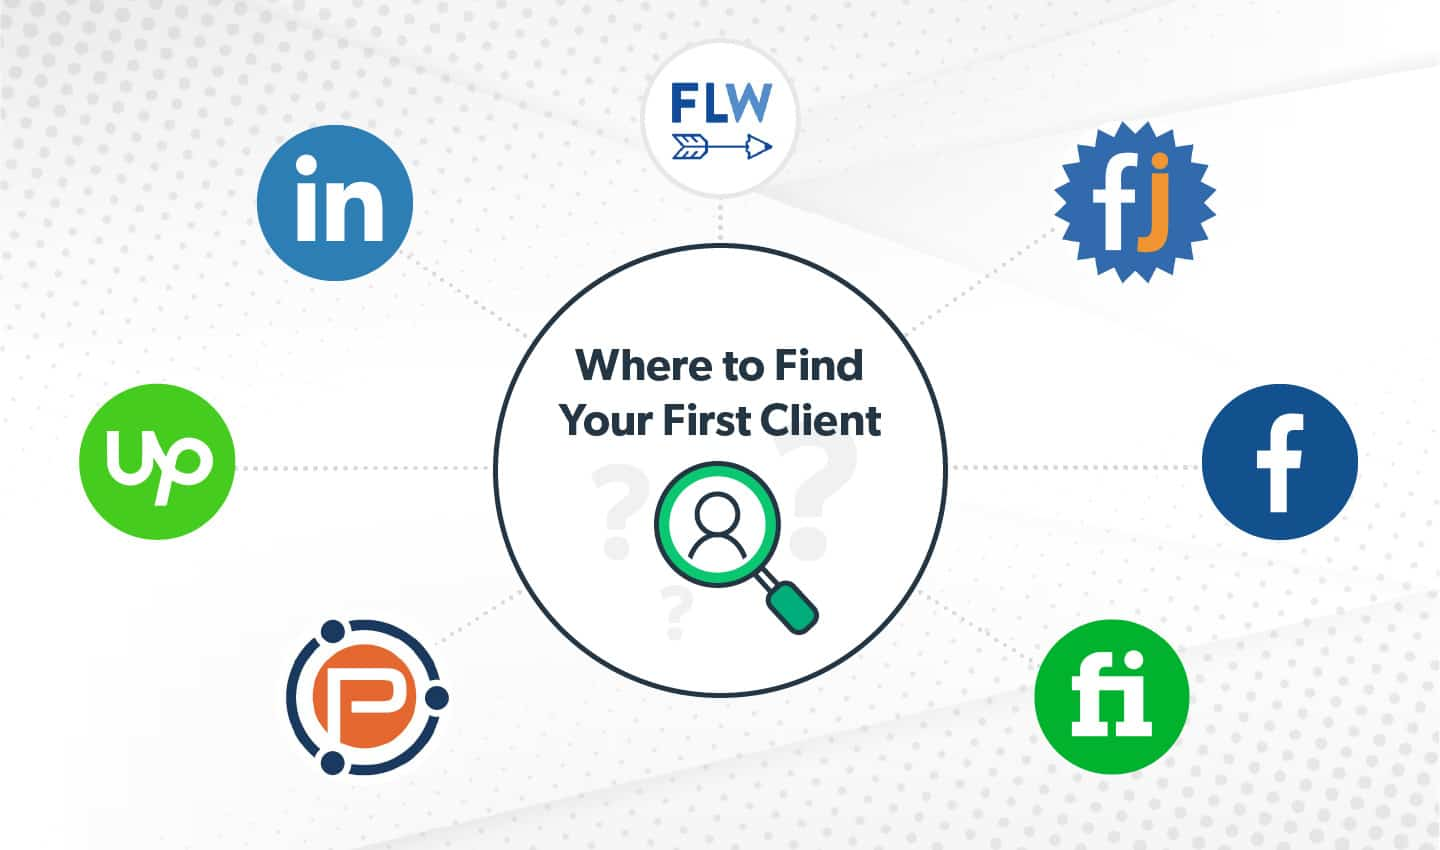 Where to find your first client